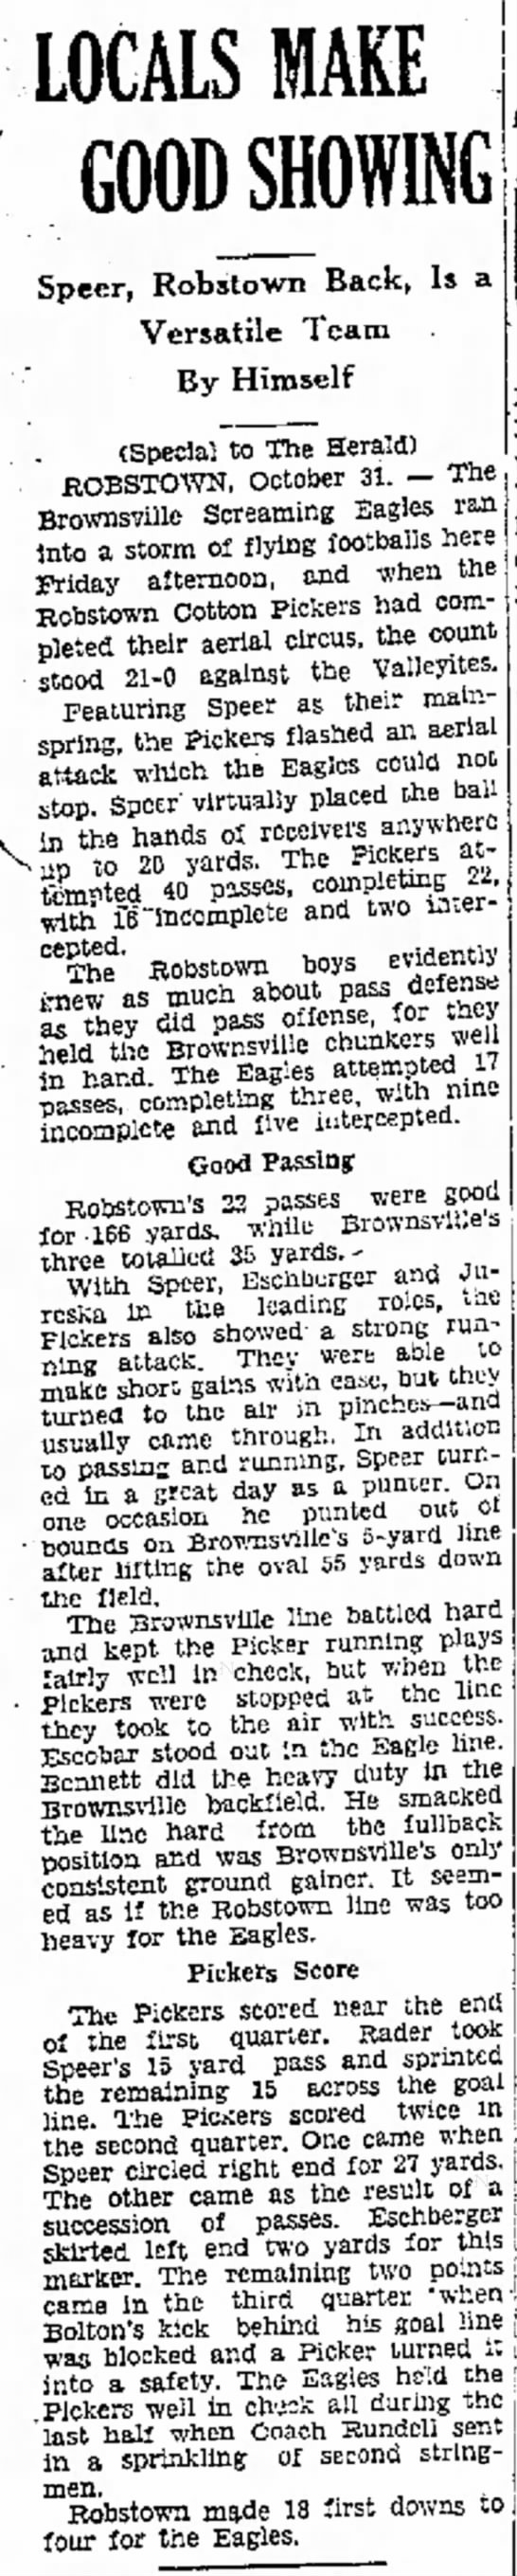 Bennett on Brownsville Football team. 11-1-1930 -